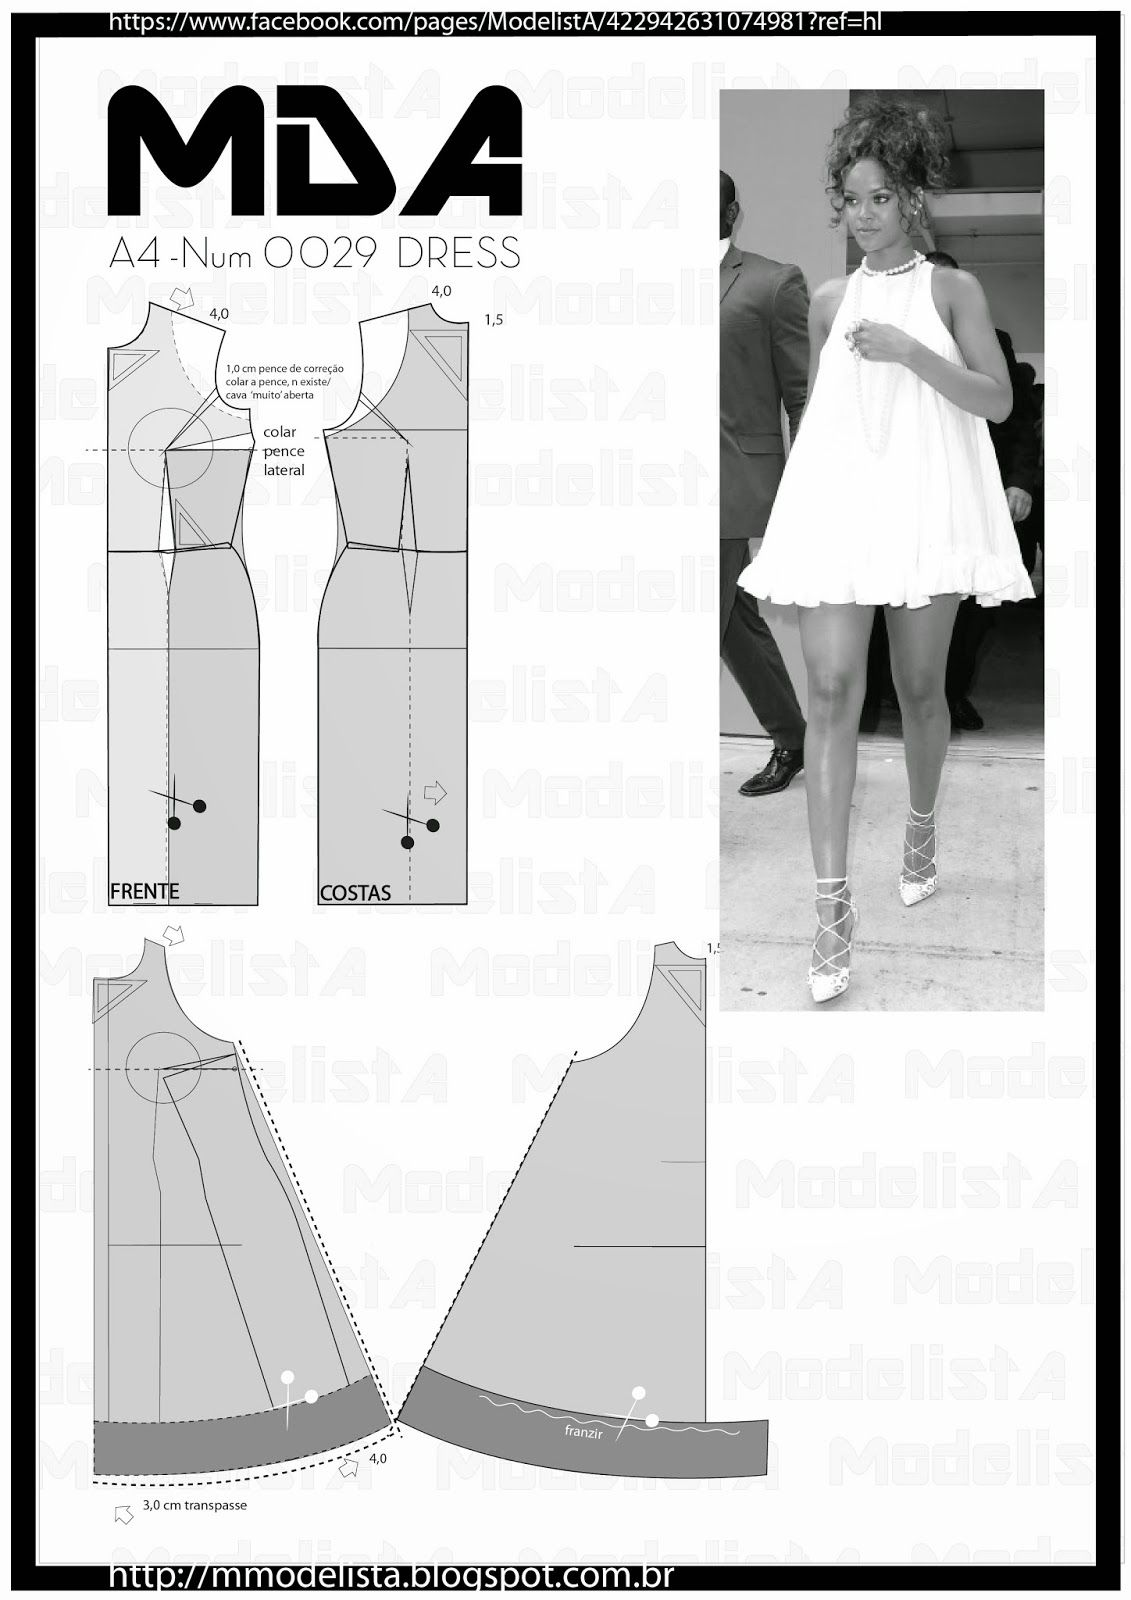 ModelistA: A4 NUM 0028 TRAPEZE DRESSsábado, 14 de fevereiro de 2015 A4 NUM 0028 TRAPEZE DRESS Now in the summer, how about a comfortable clothes but at the same time, elegant? For the trapeze dress can play this role very well. Democratic, that part of the 60s and back with everything in 2014/15